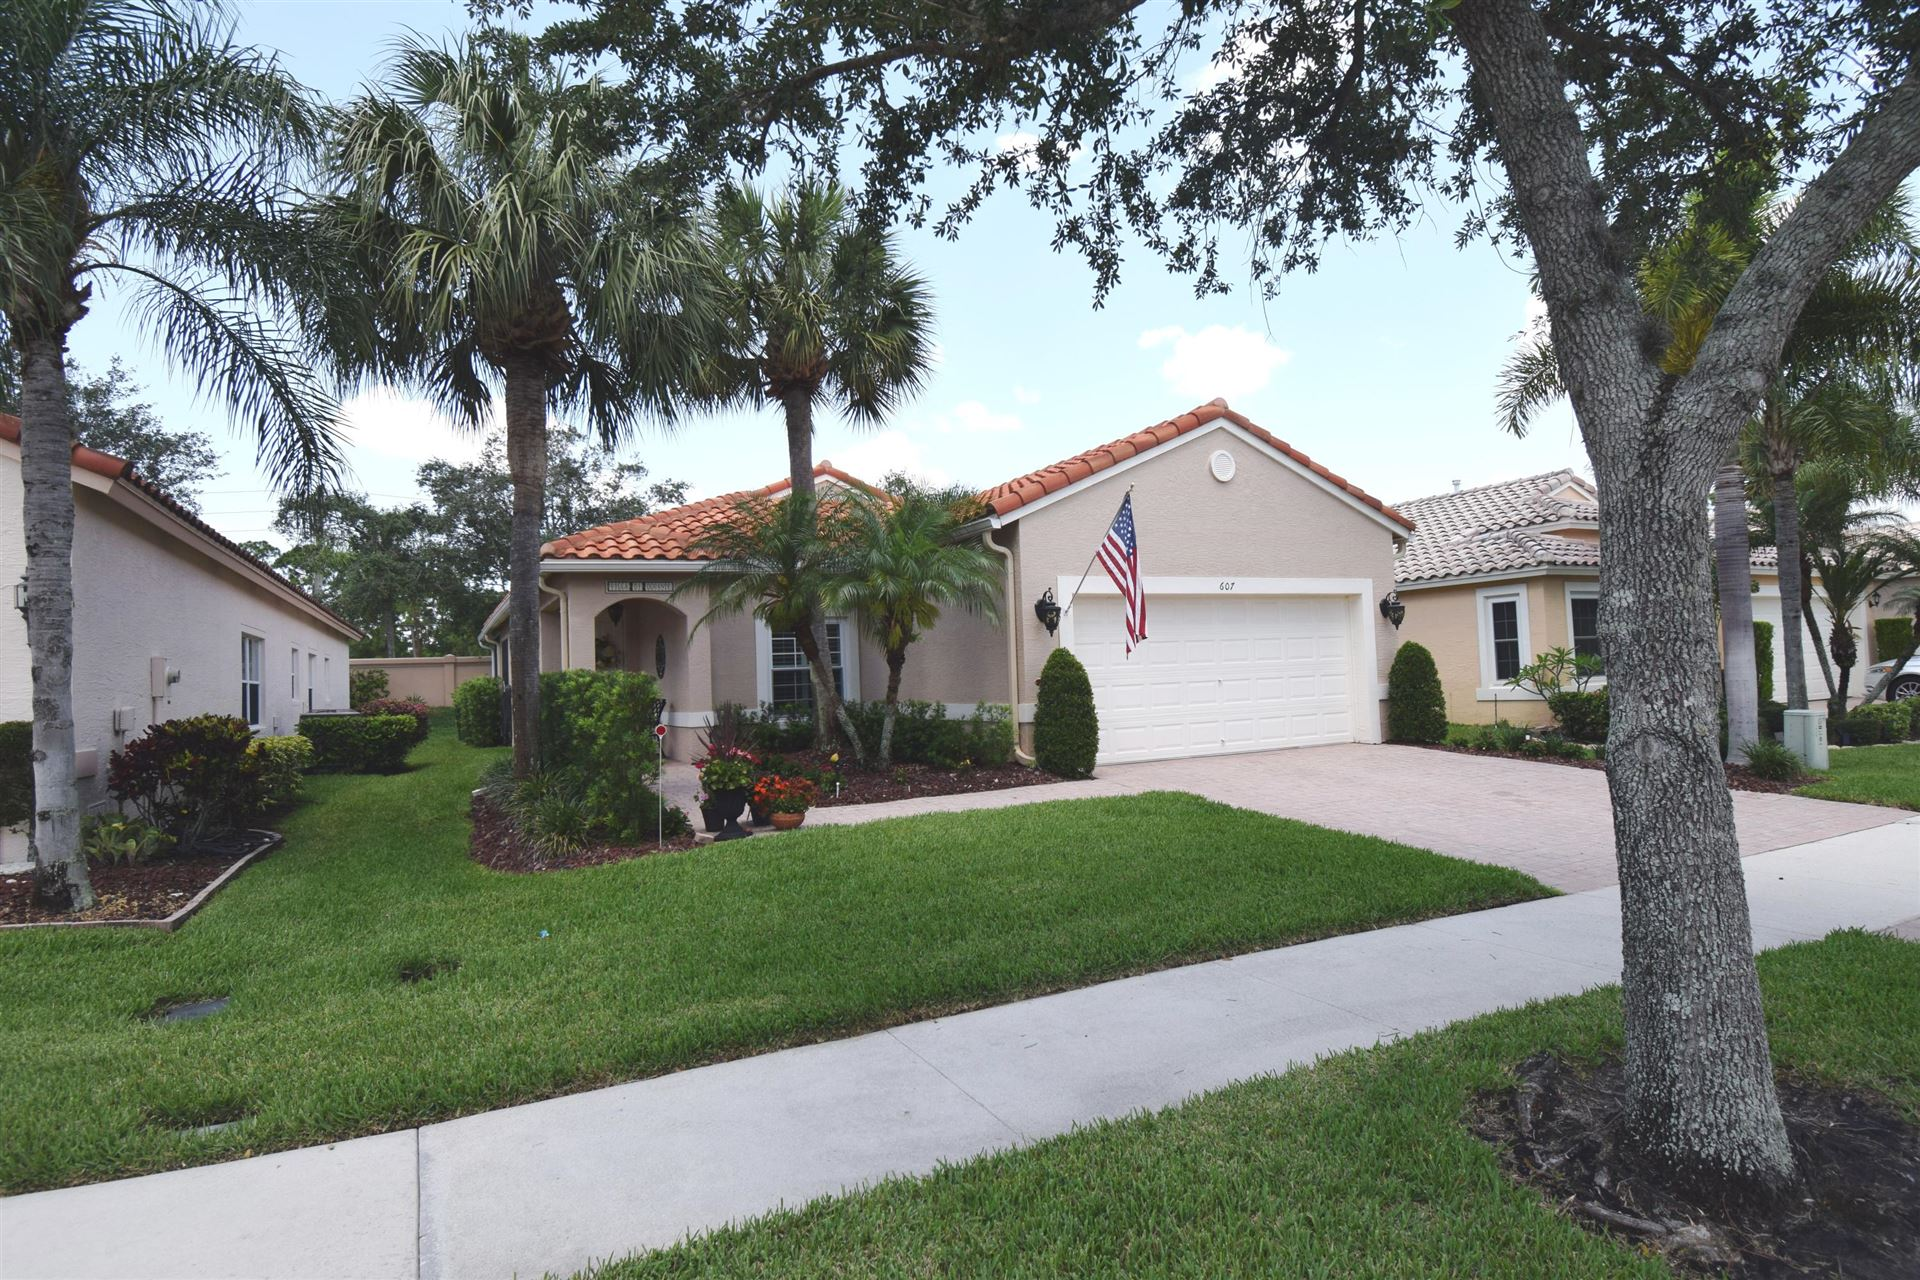 Photo of 607 NW Whitfield Way, Port Saint Lucie, FL 34986 (MLS # RX-10624705)